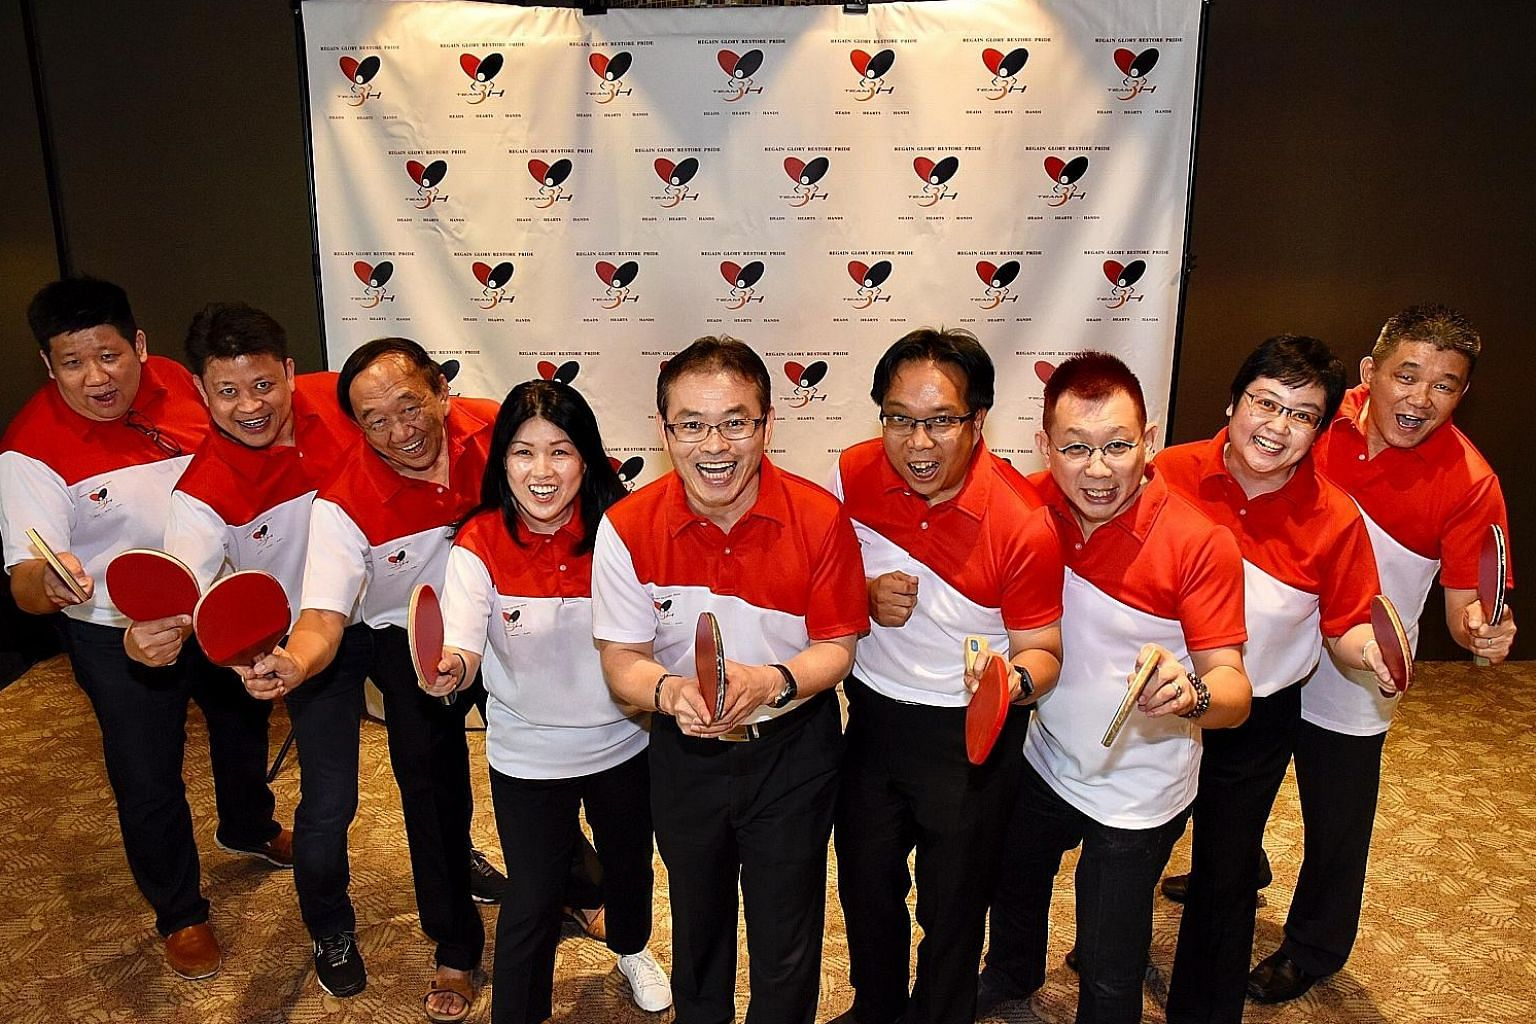 Toh Kian Lam (centre) and his team members running in the STTA election (from left) Bernard Tan, Eric Fong, Terry Tan, Patricia Kim, Ow Chee Chung, Marcus Tan, Wu Xiaowen and Andrew Tan.